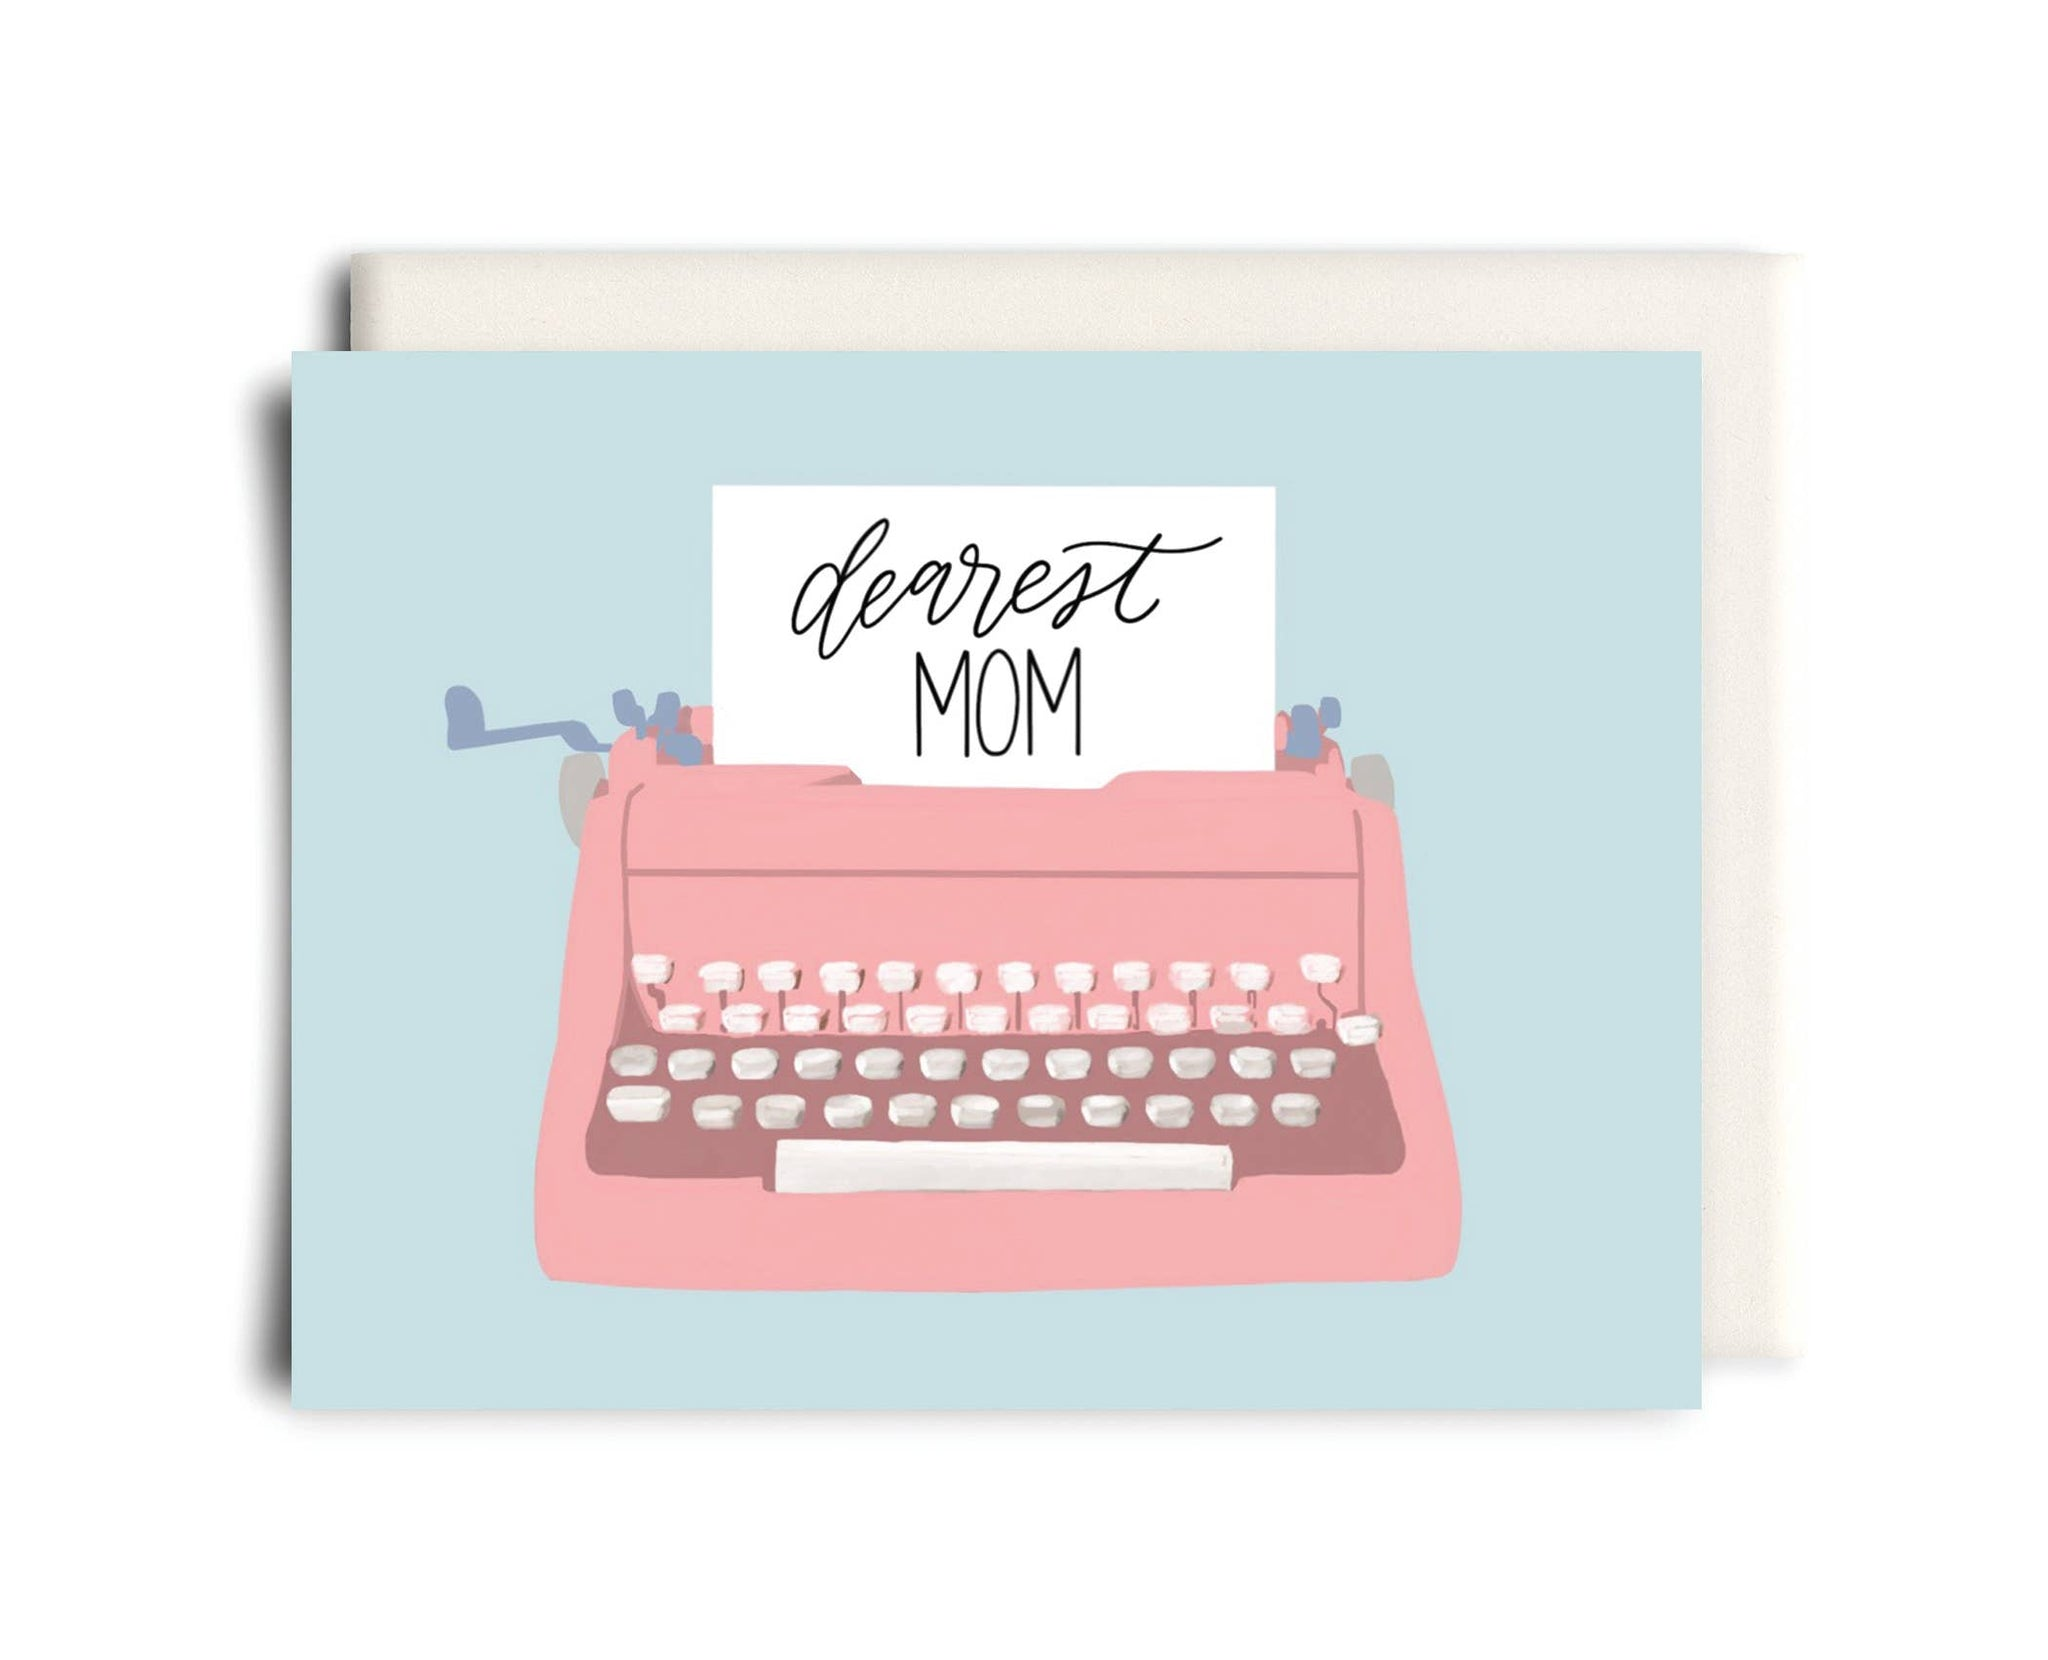 DEAREST MOM | MOTHER'S DAY CARD